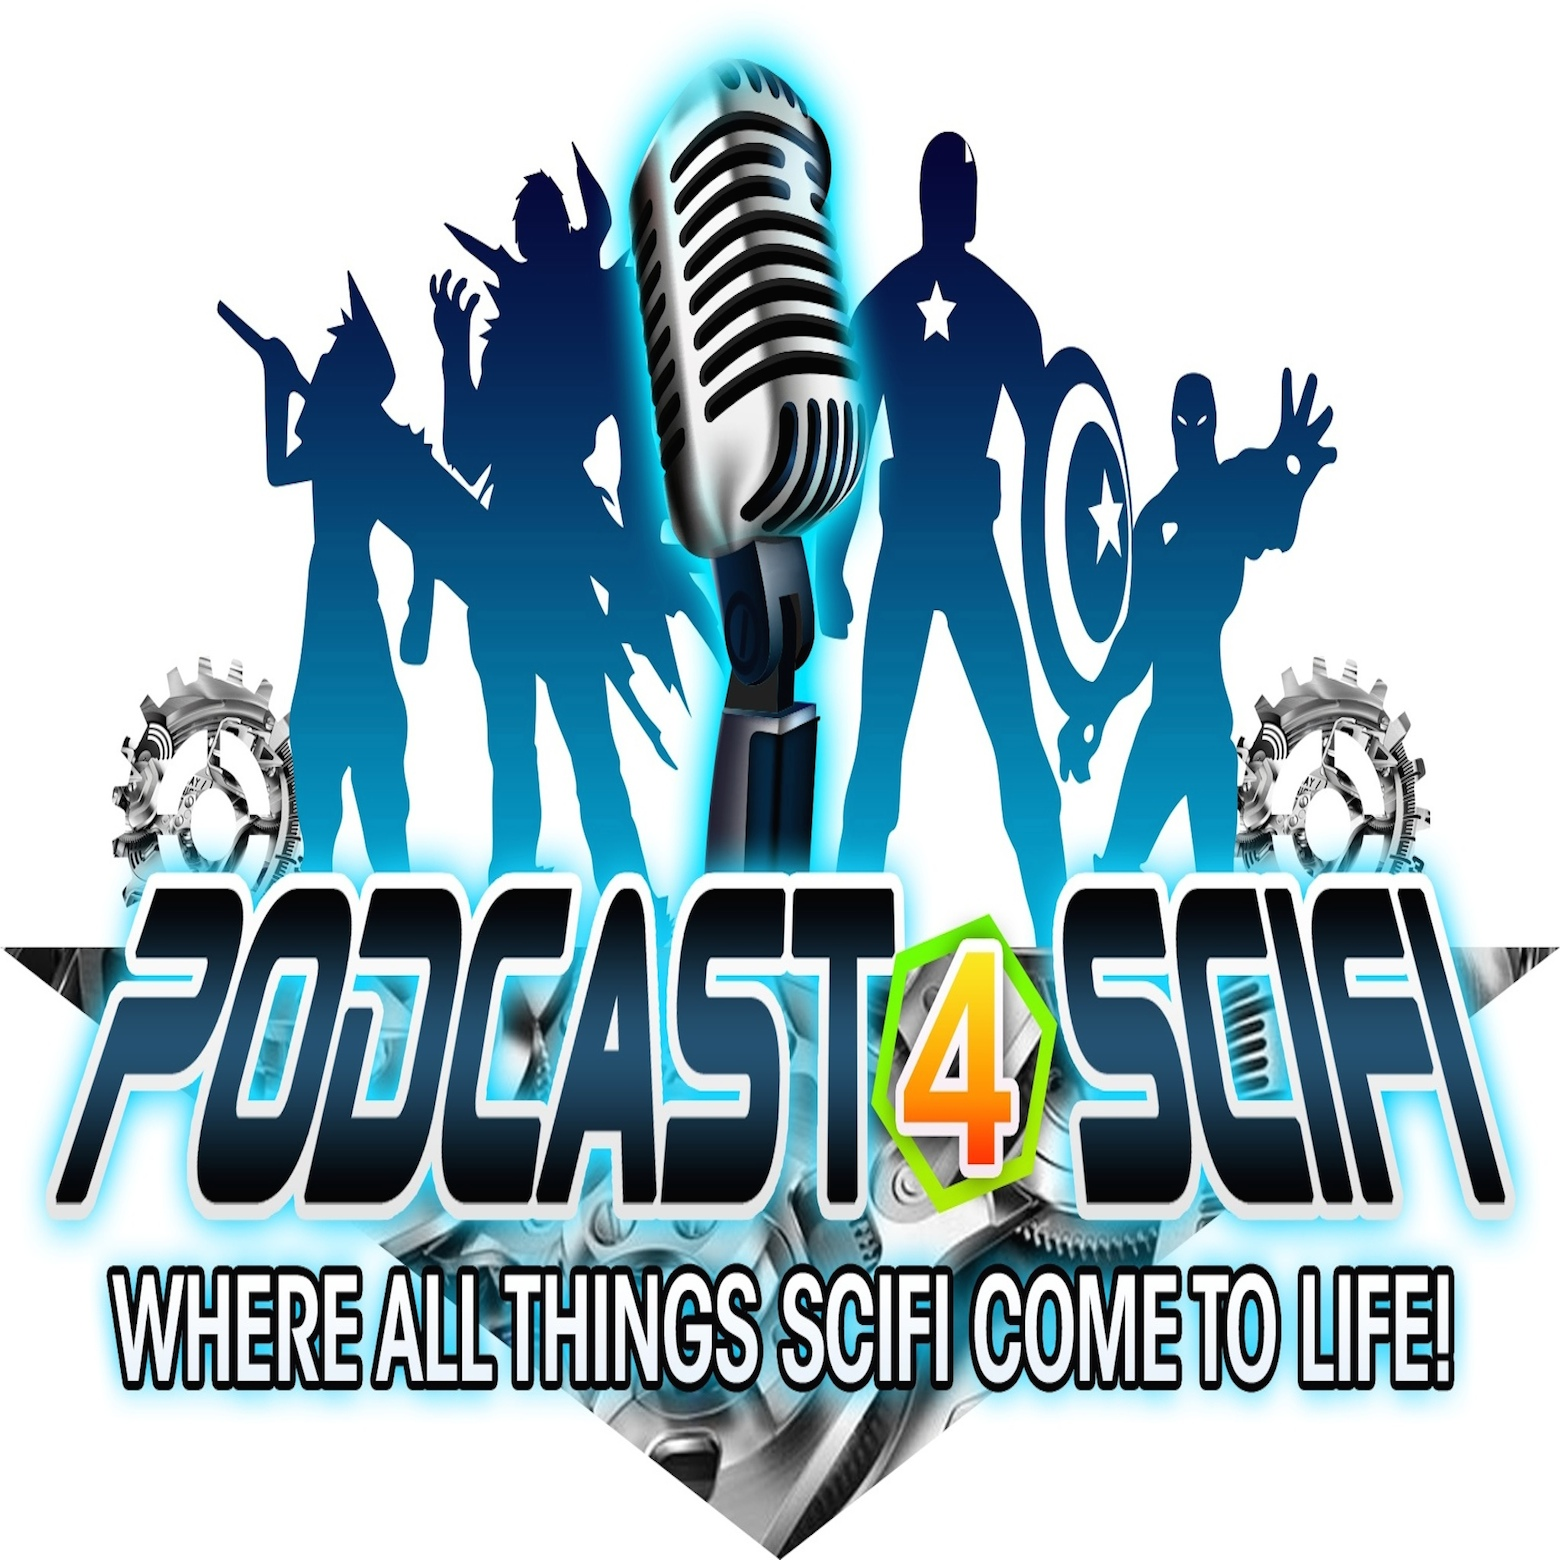 Podcast4Scifi